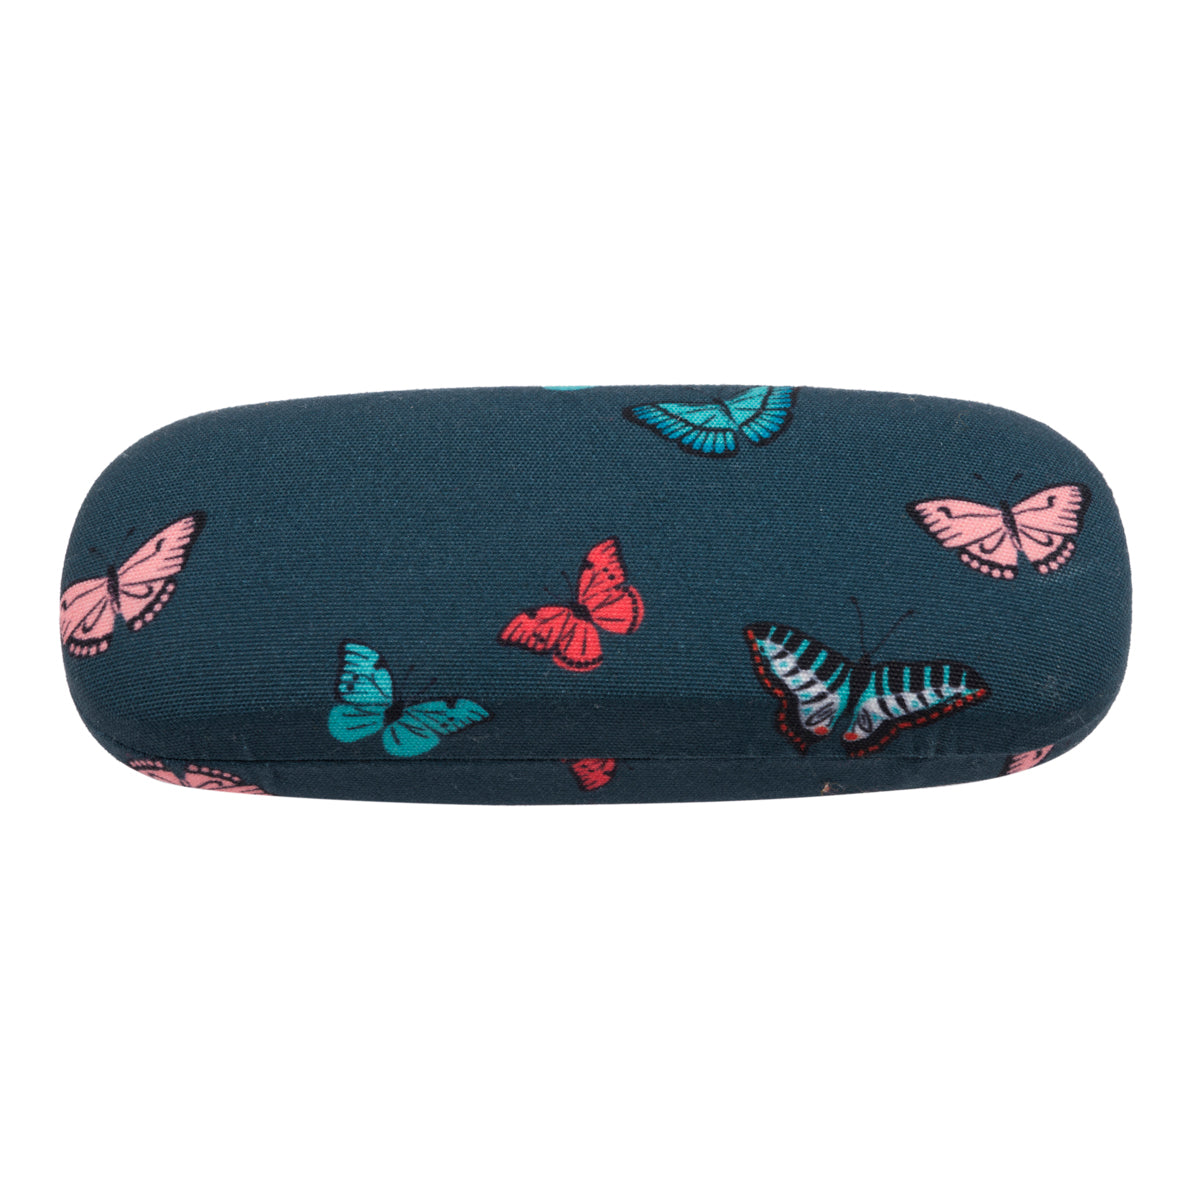 A blue Butterflies Glasses Case by Sophie Allport.